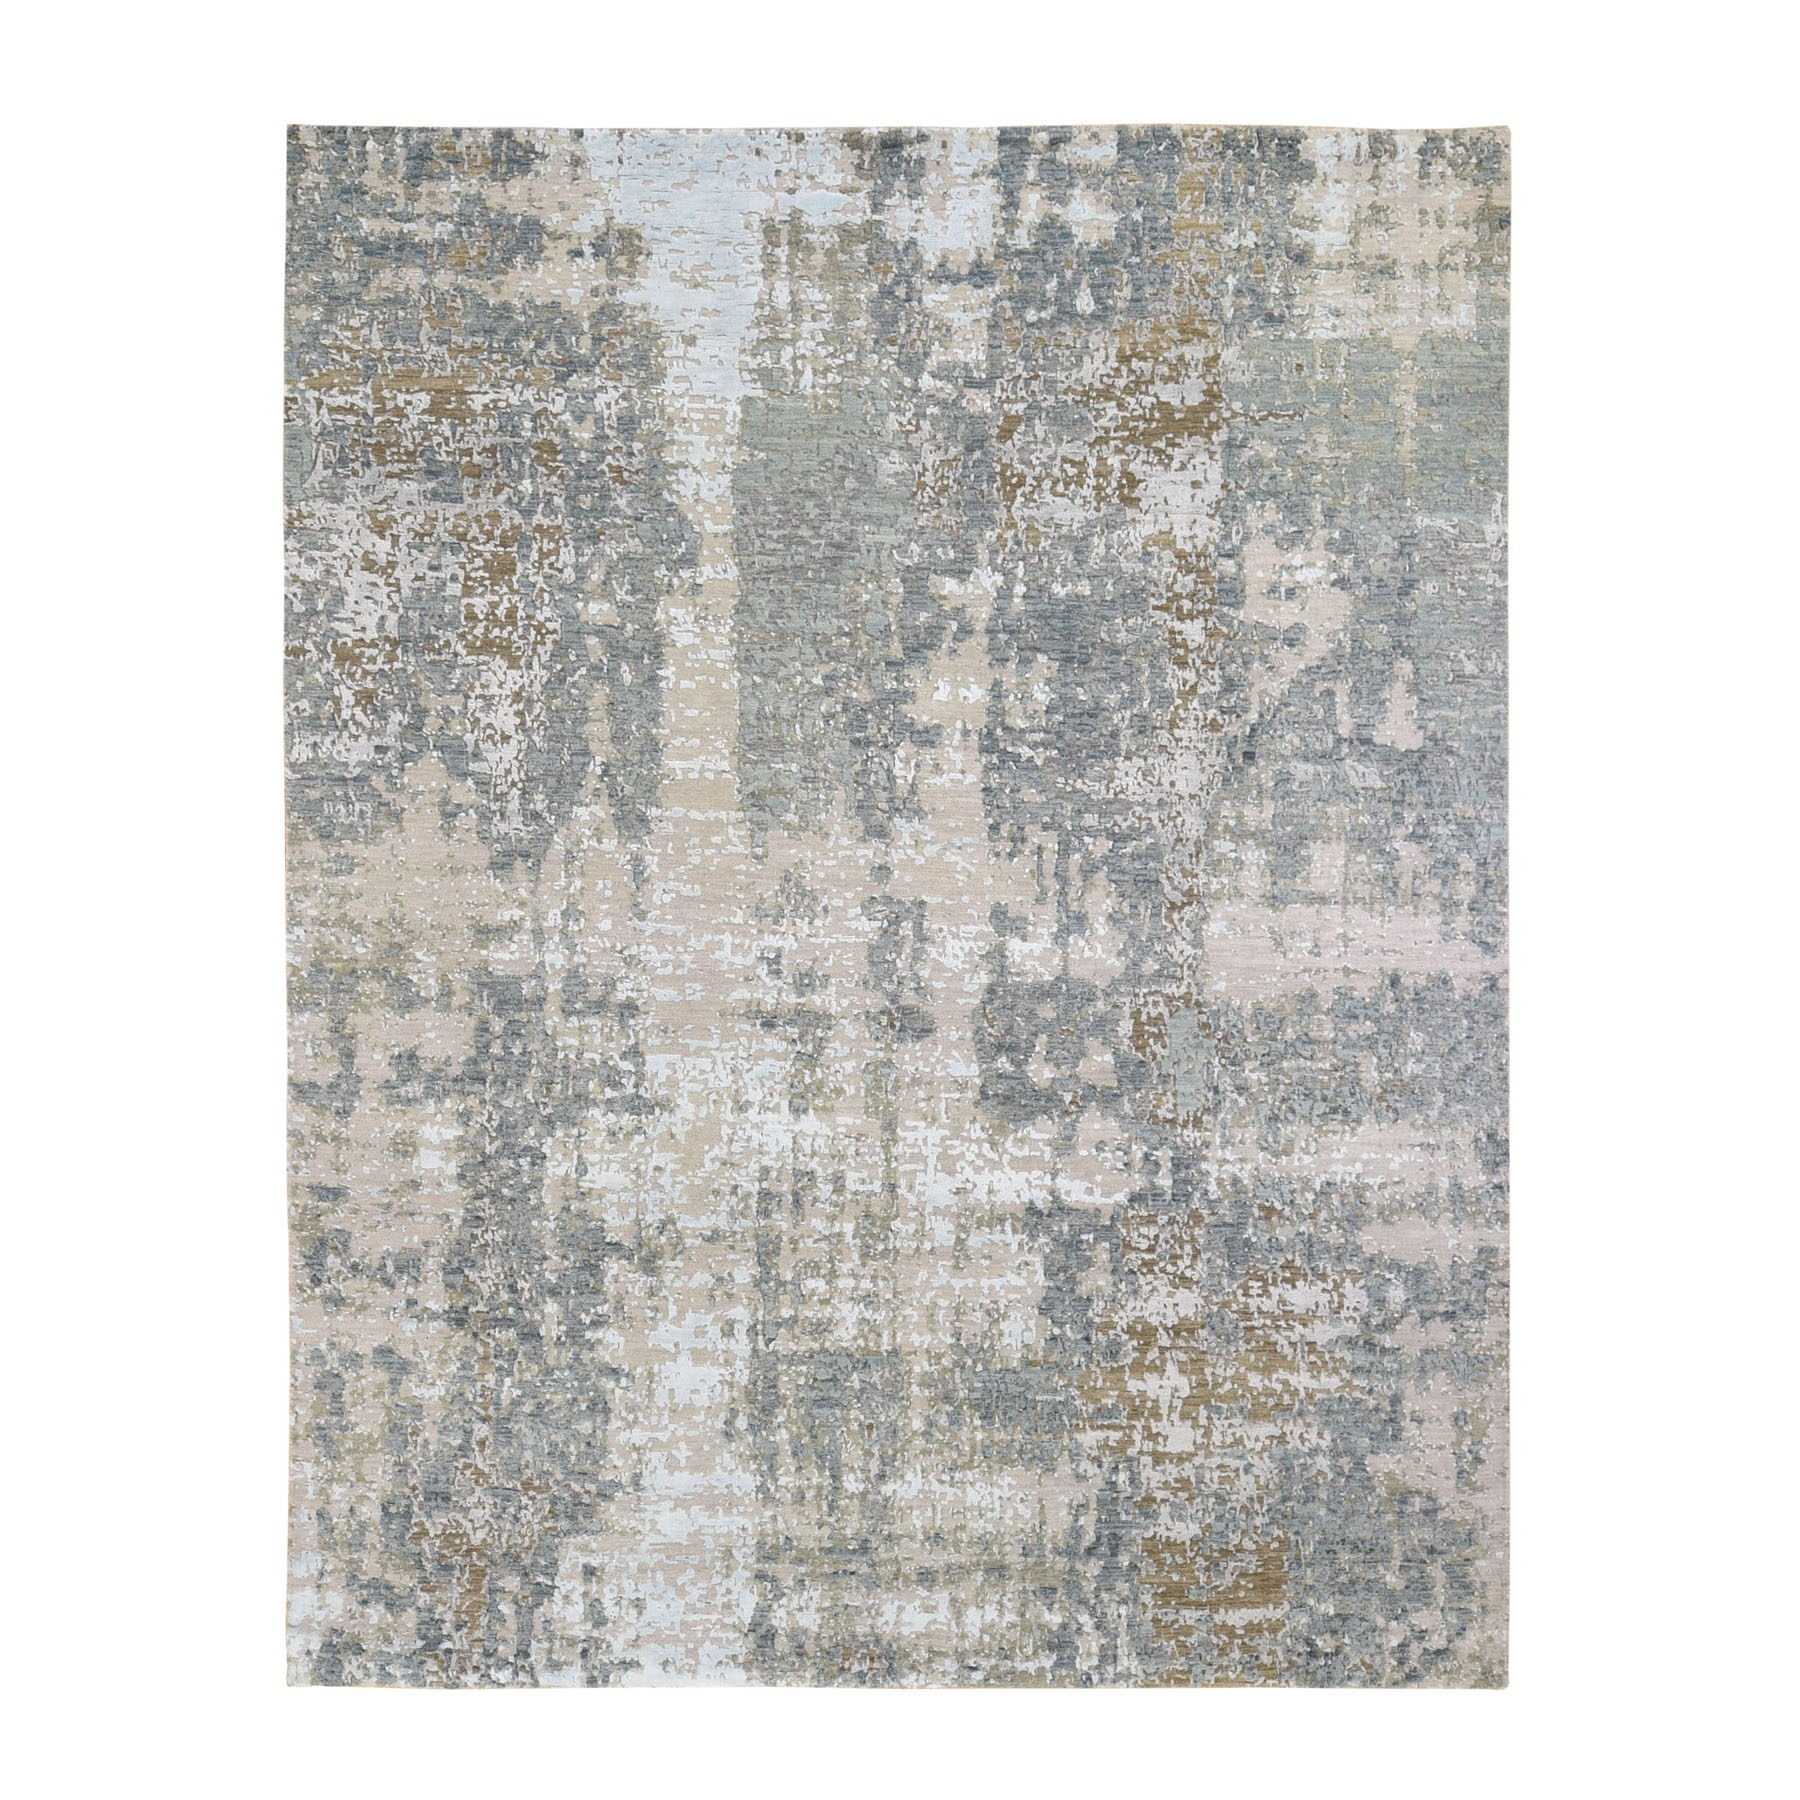 "8'x10'1"" Gray Abstract Design Wool And Silk Hi-Low Pile Denser Weave Hand Woven Oriental Rug"